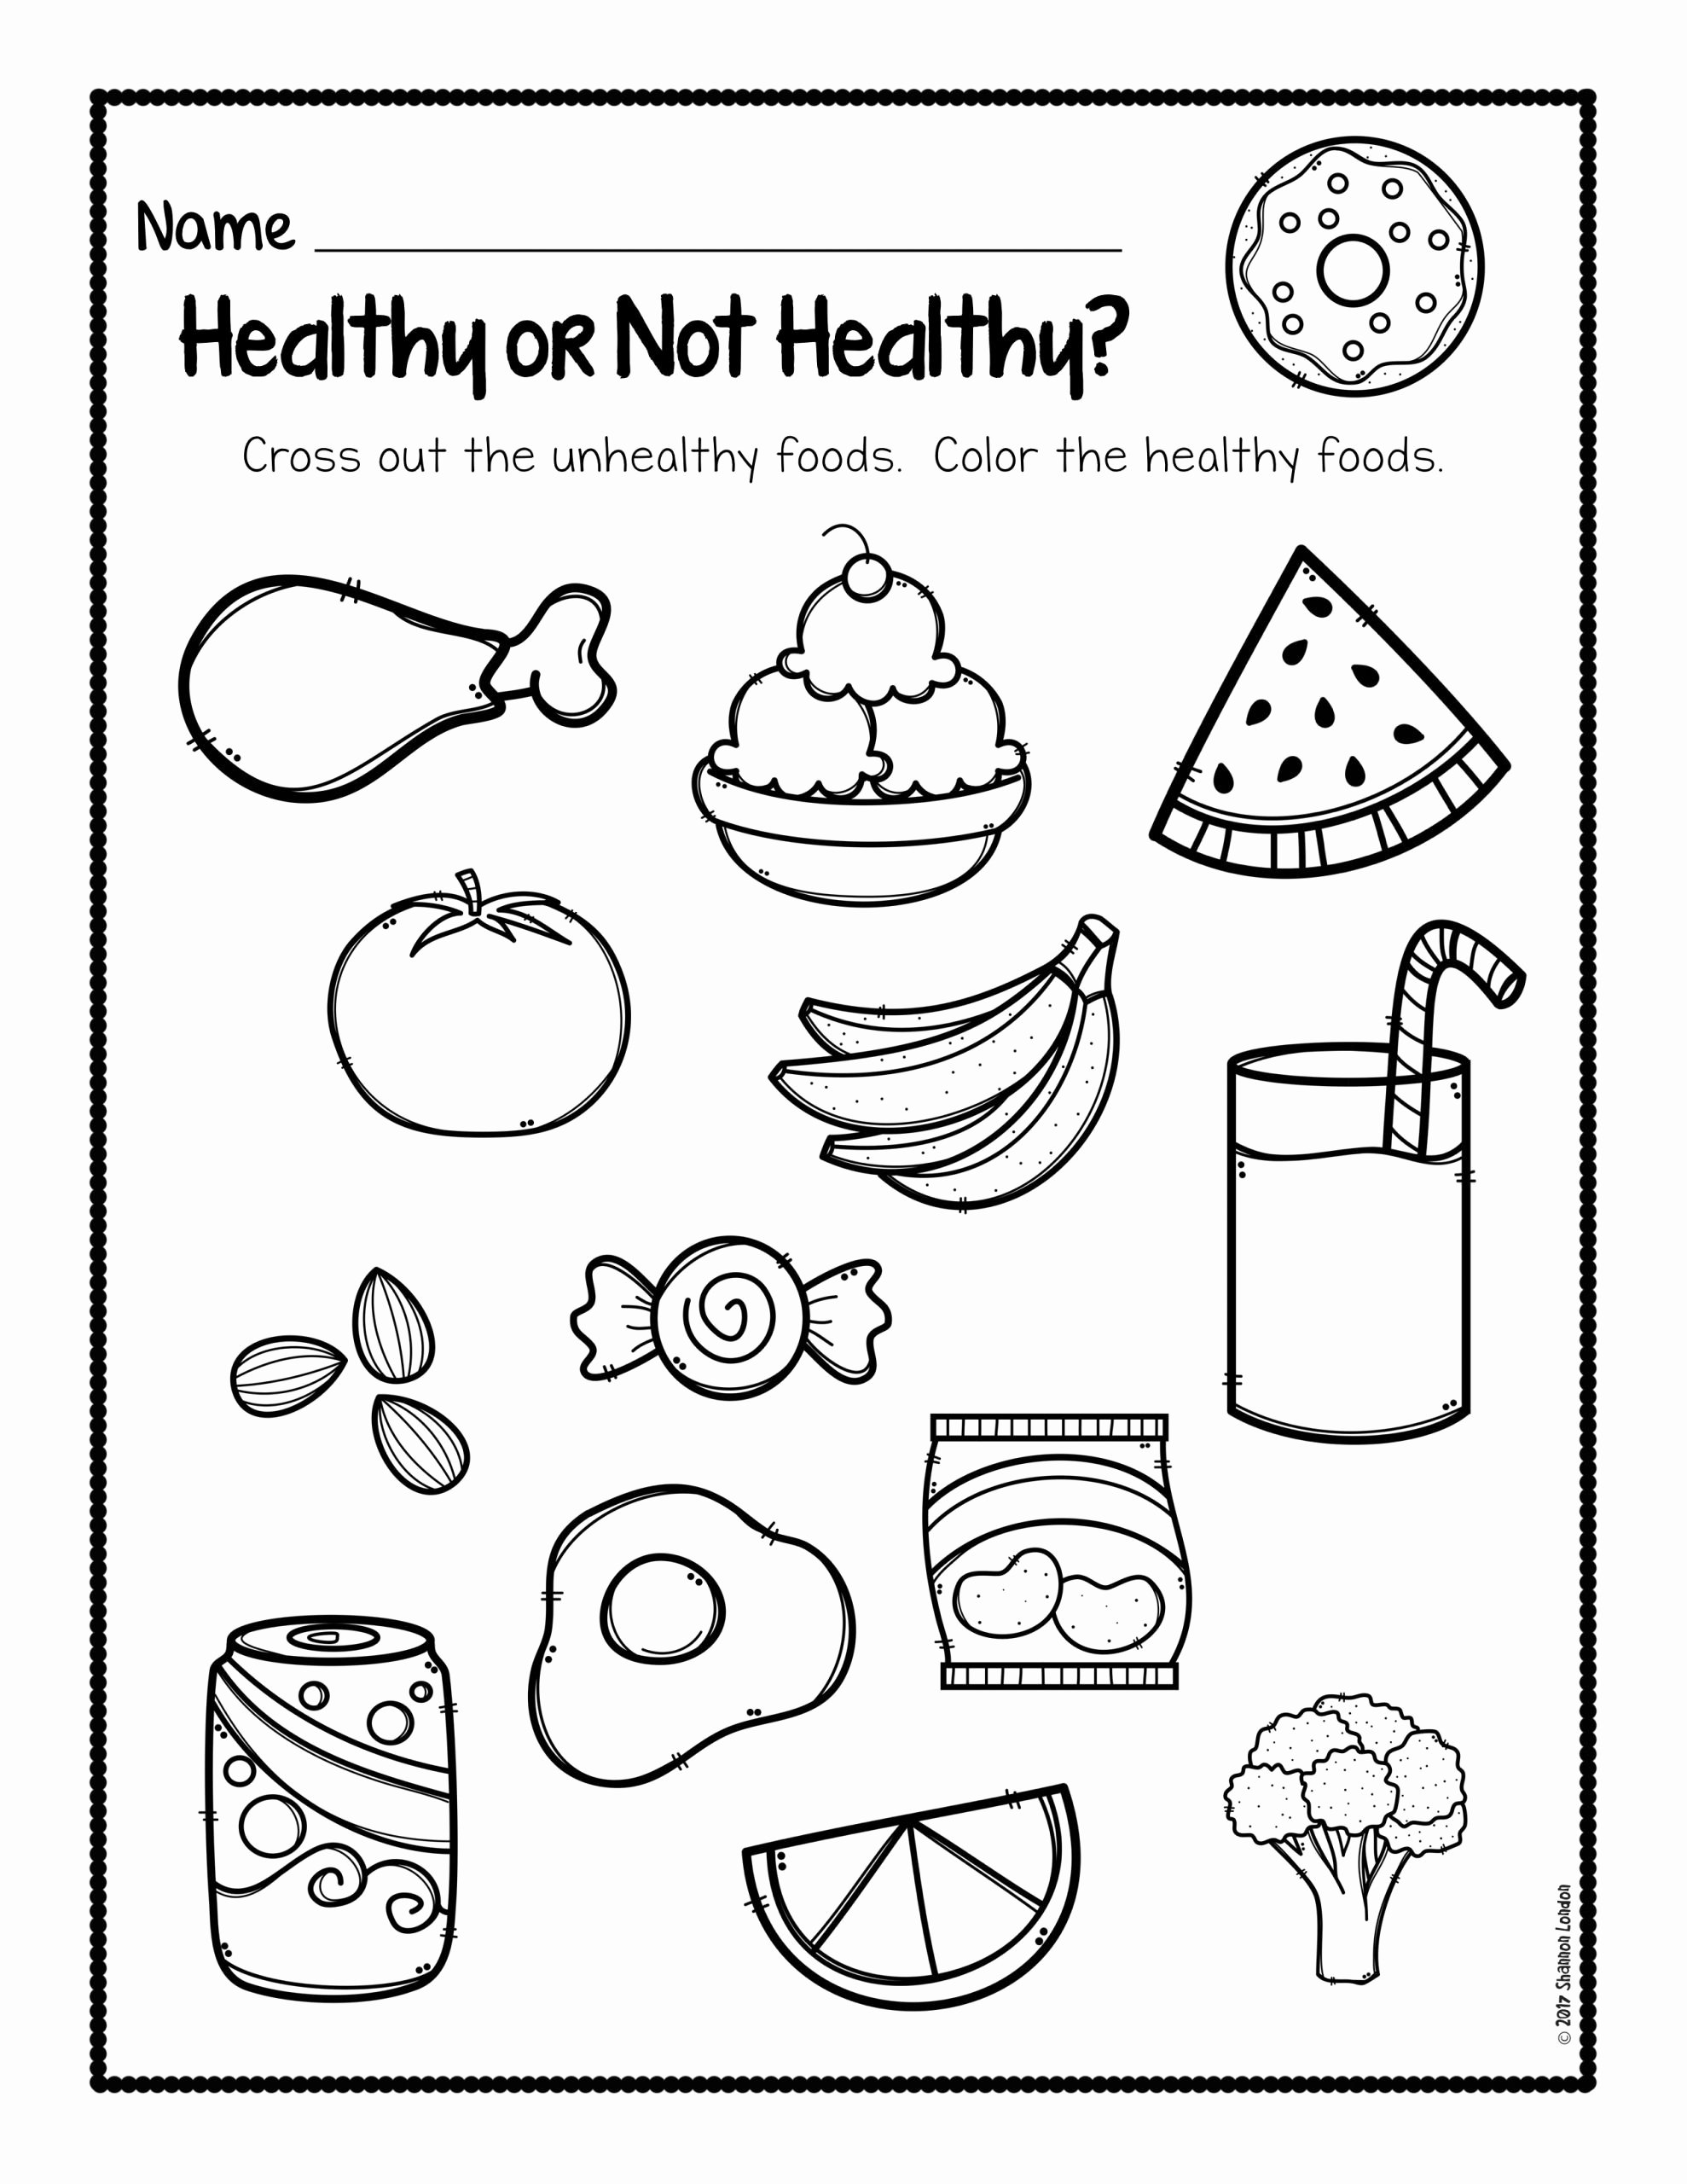 Concept Worksheets for Preschoolers Fresh Worksheets 9th Grade Biology Worksheets Printable and In